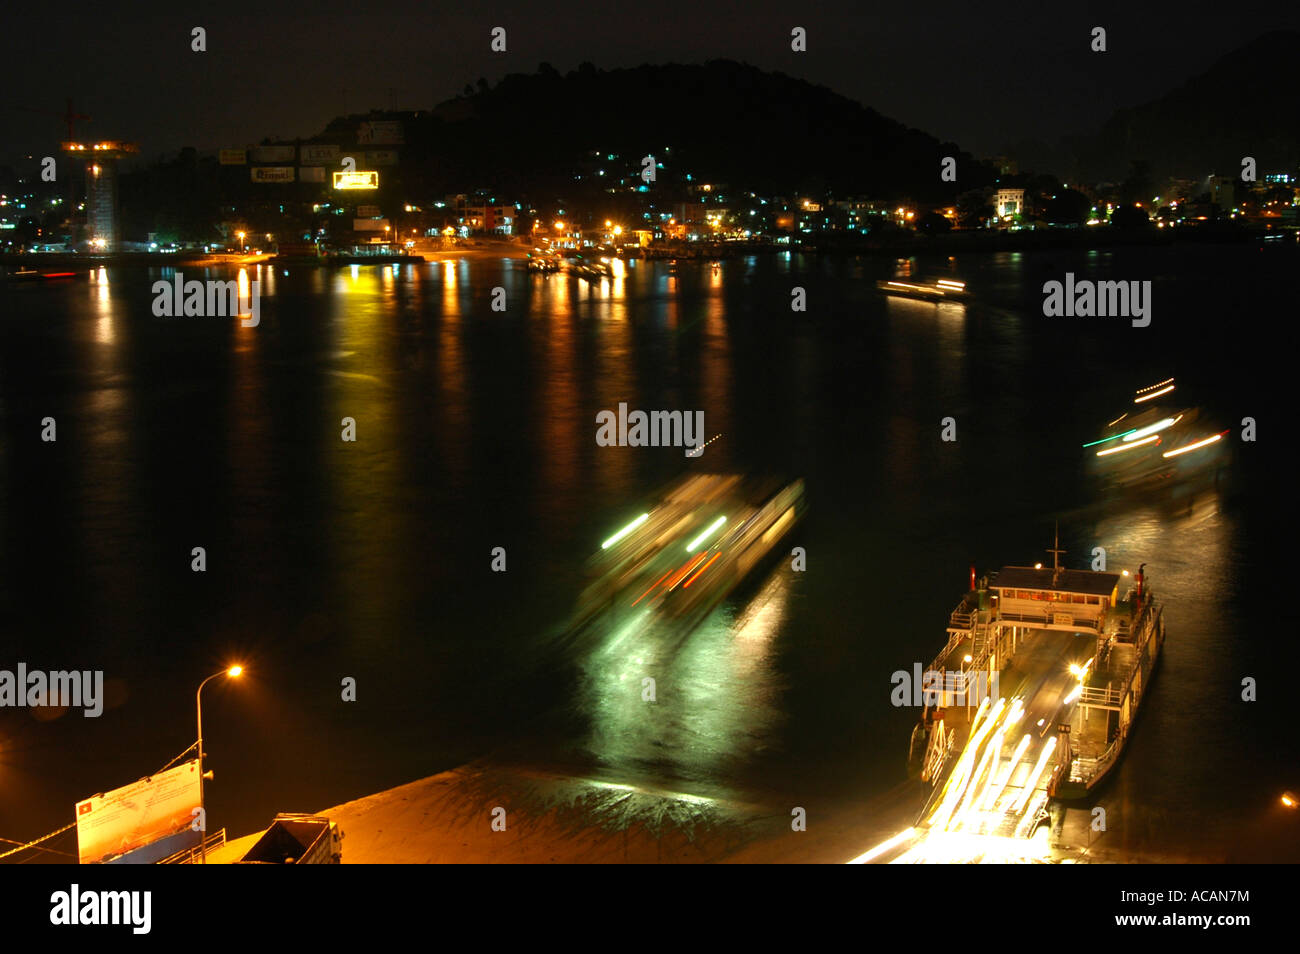 Night ferryboats from Halong City to Hon Gai district, Halong City, Vietnam - Stock Image